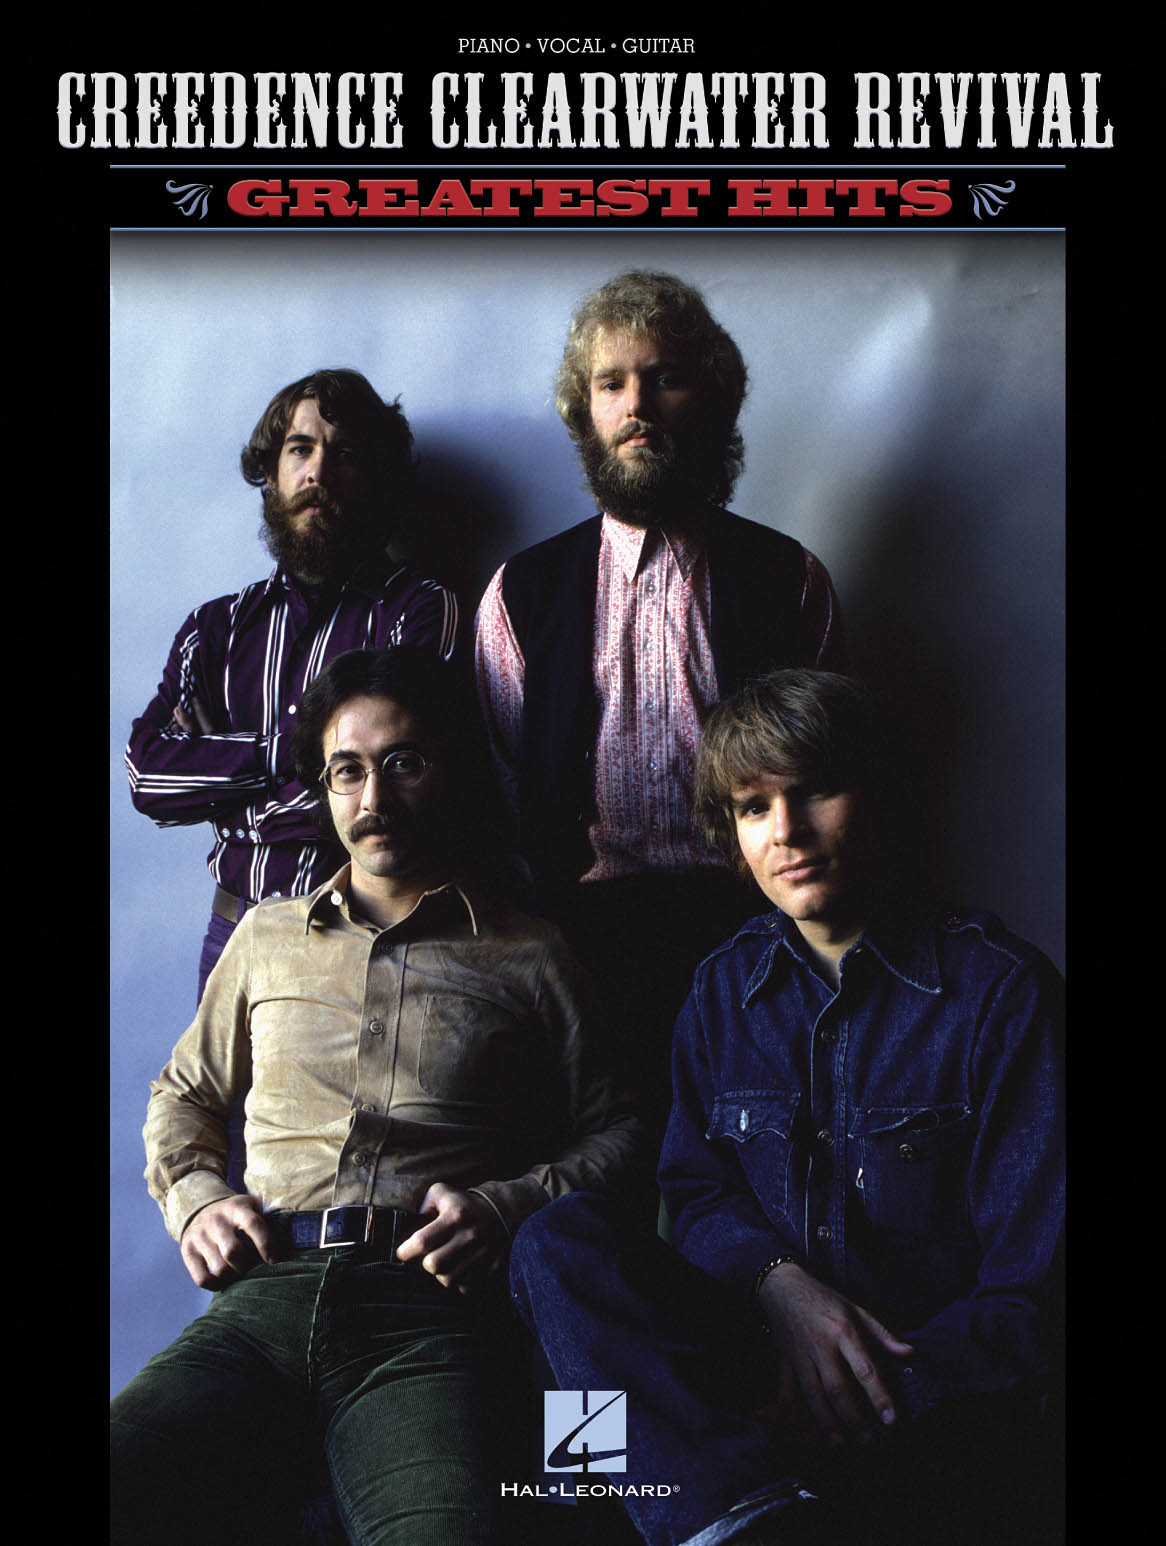 Creedence Clearwater Revival: Creedence Clearwater Revival - Greatest Hits: